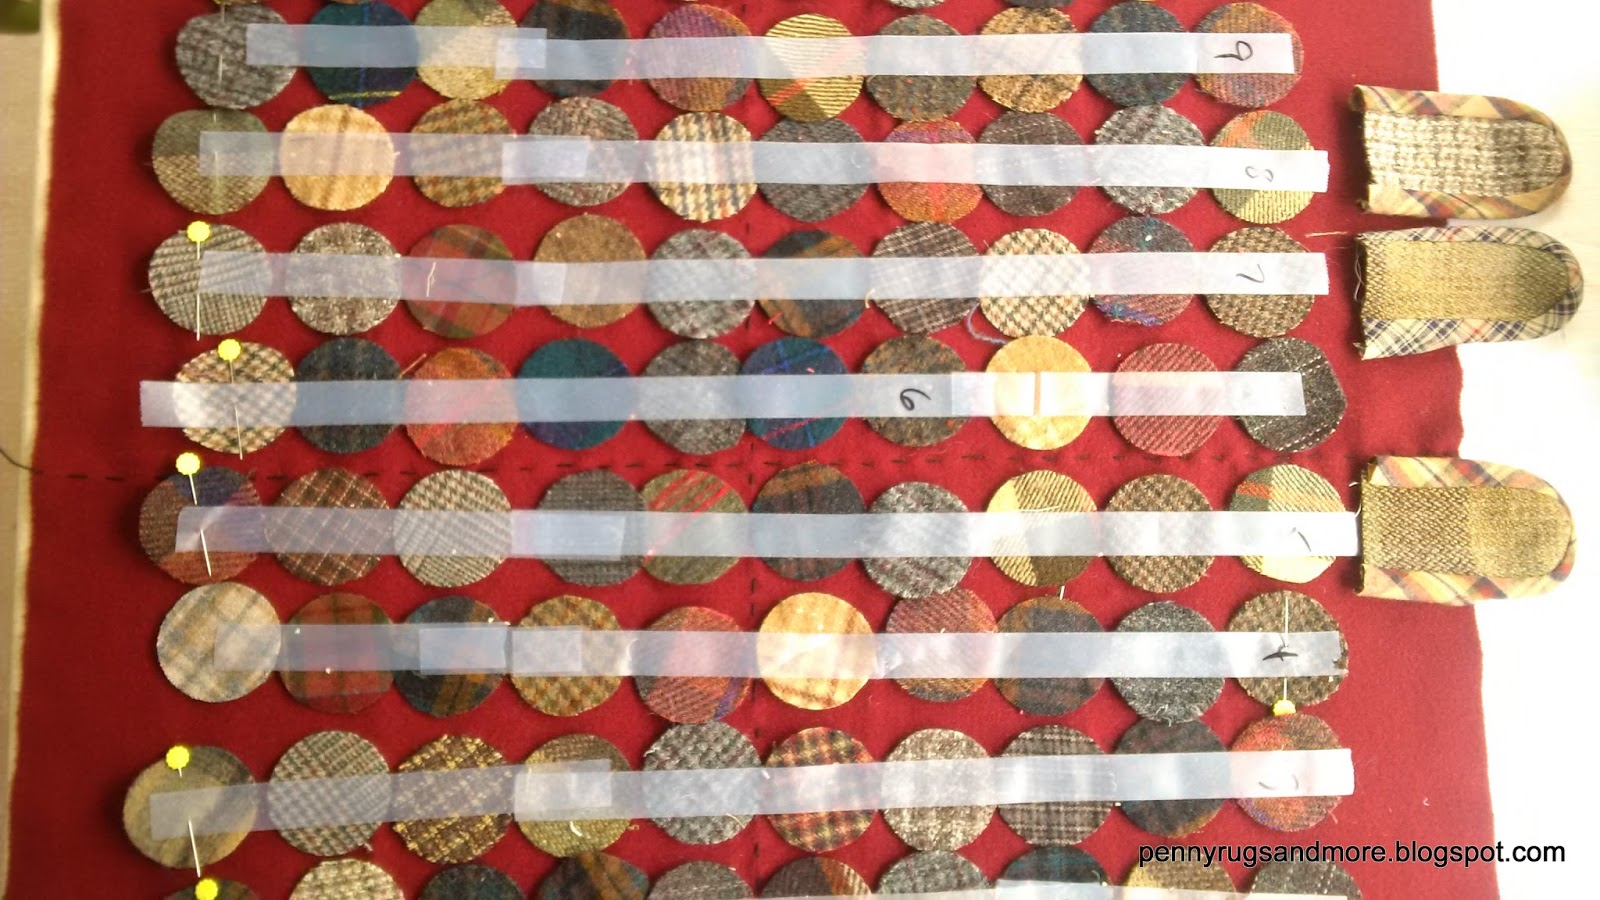 lay out 2 inch mixed plaid pennies into 10 rows of 10 yes thatu0027s 100 2 inch pennies i use scotch tape to hold my rows and i mark each row with a number